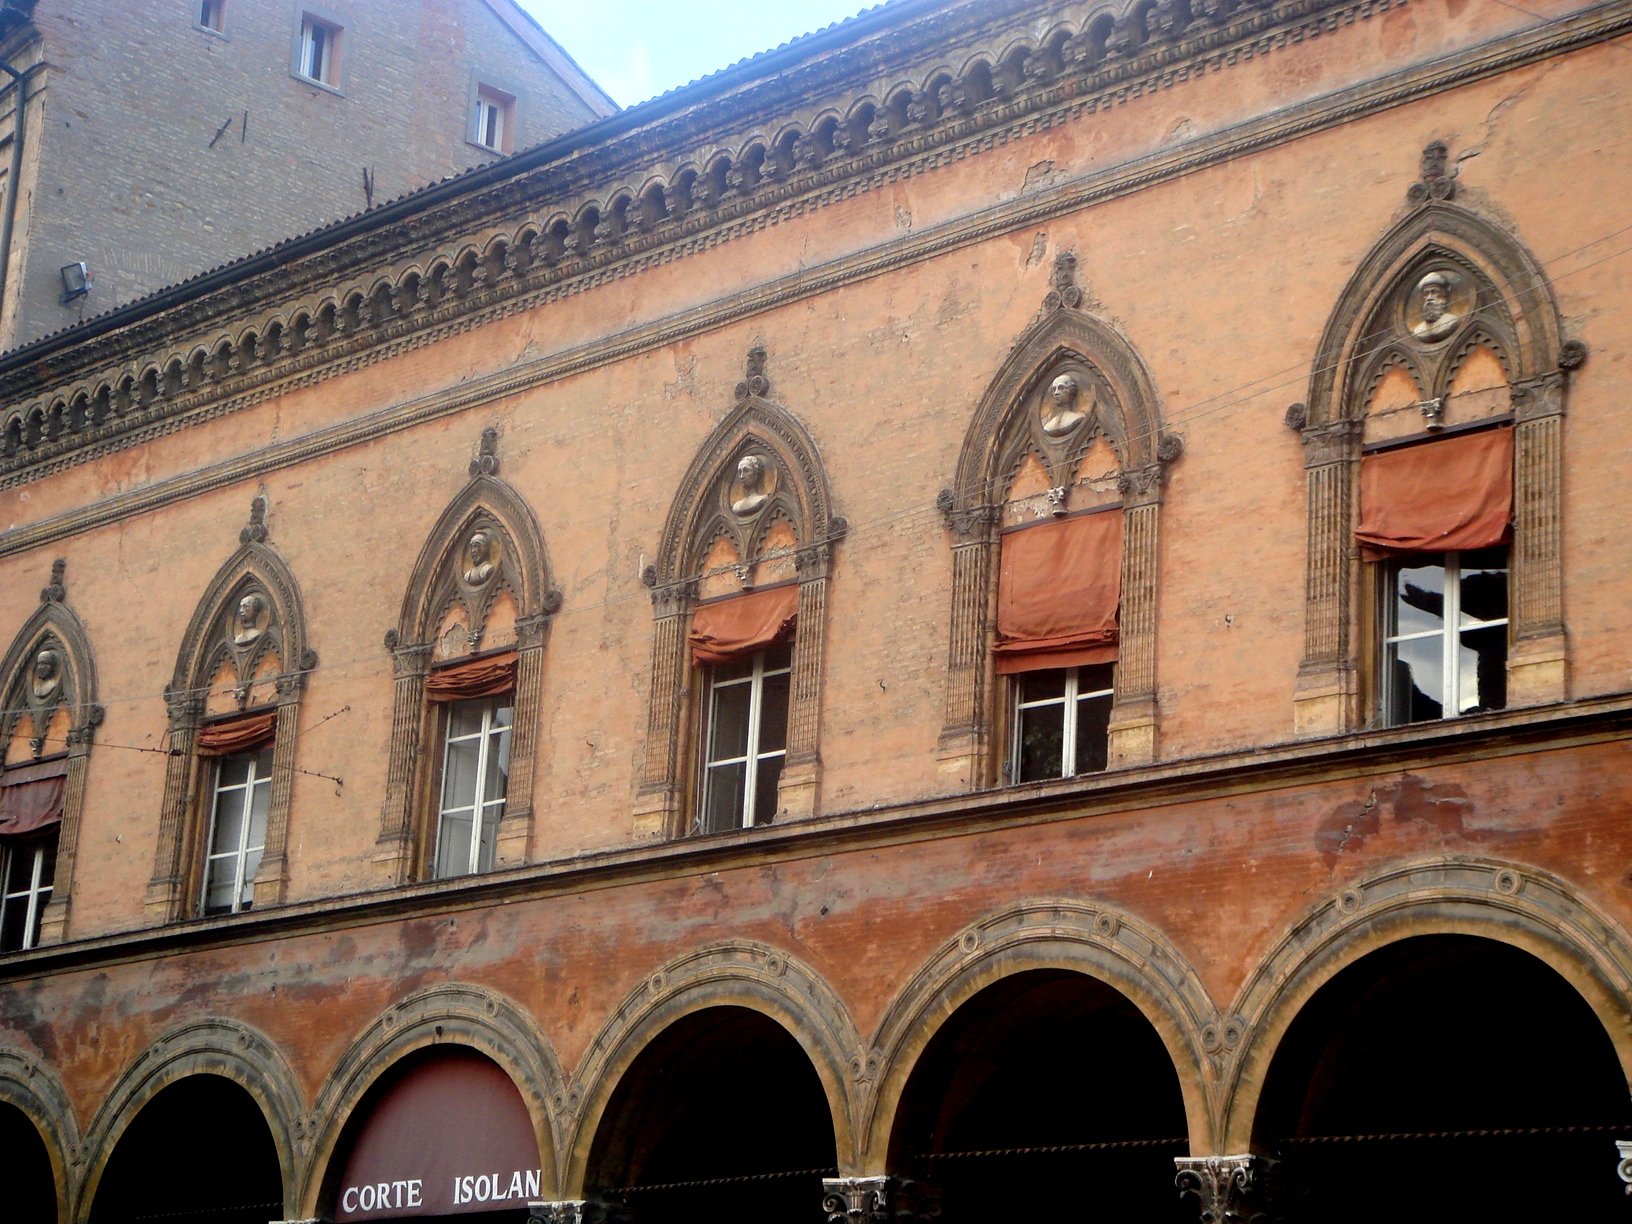 c 2 codice catastale bologna - photo#13